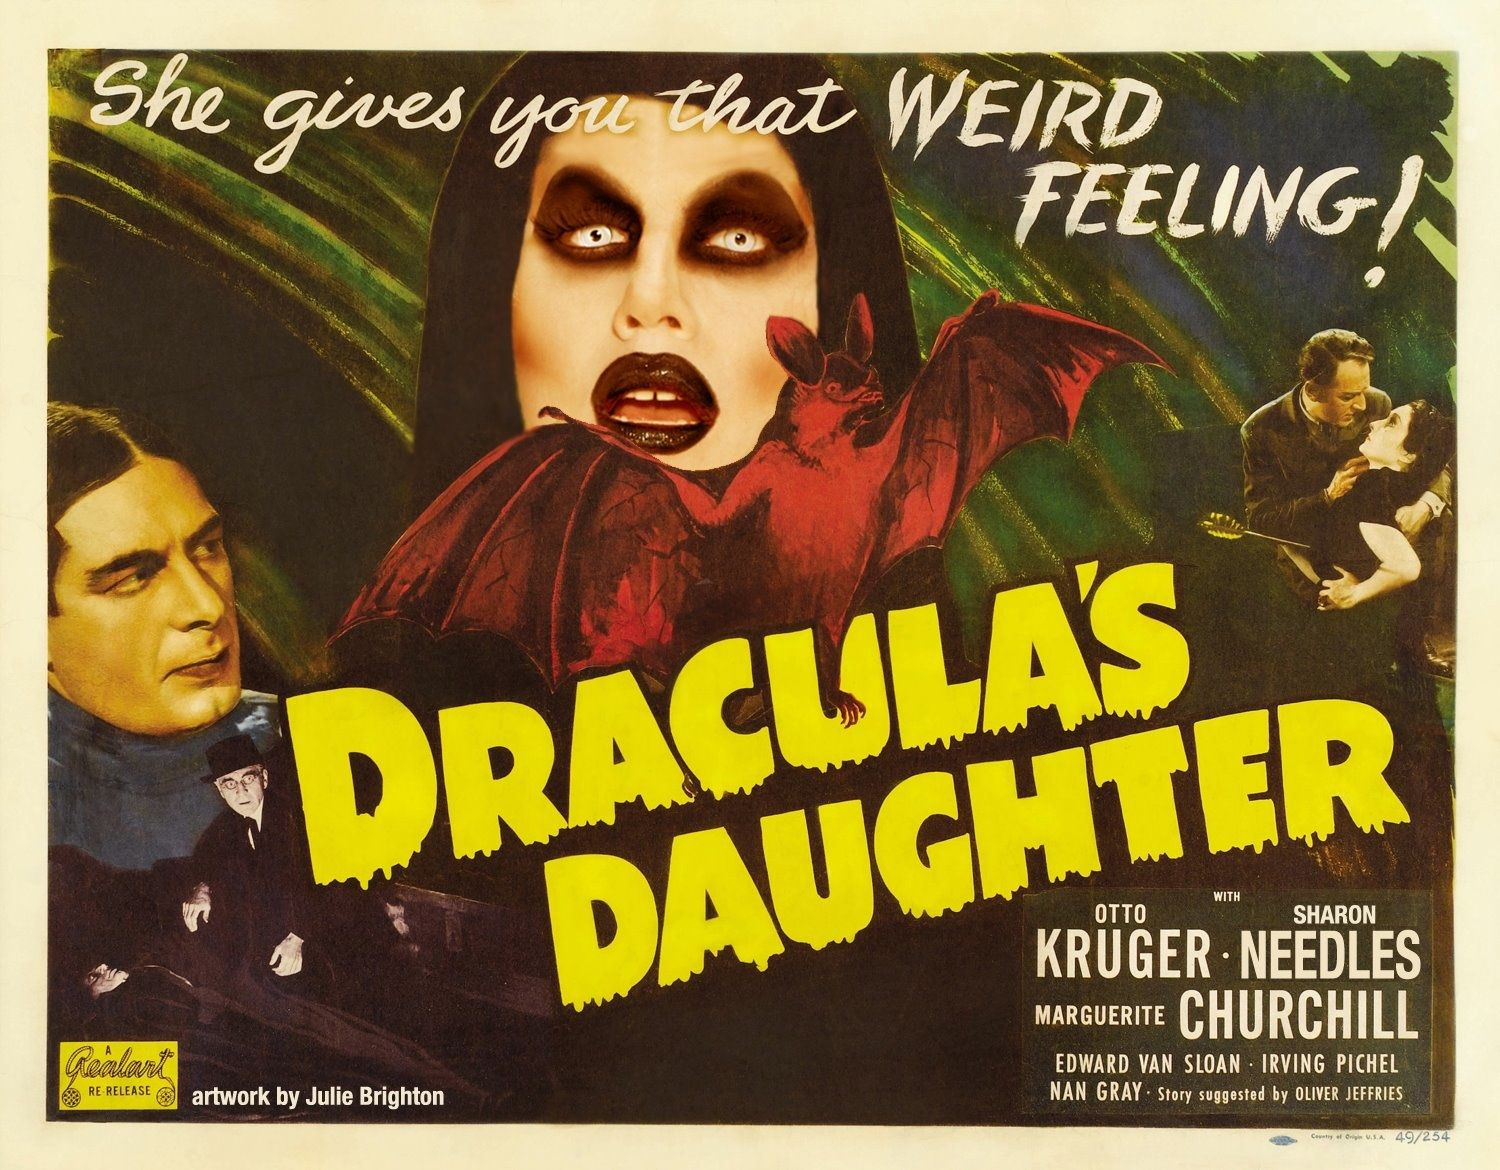 sharon needles; dracula's daughter poster by julie brighton